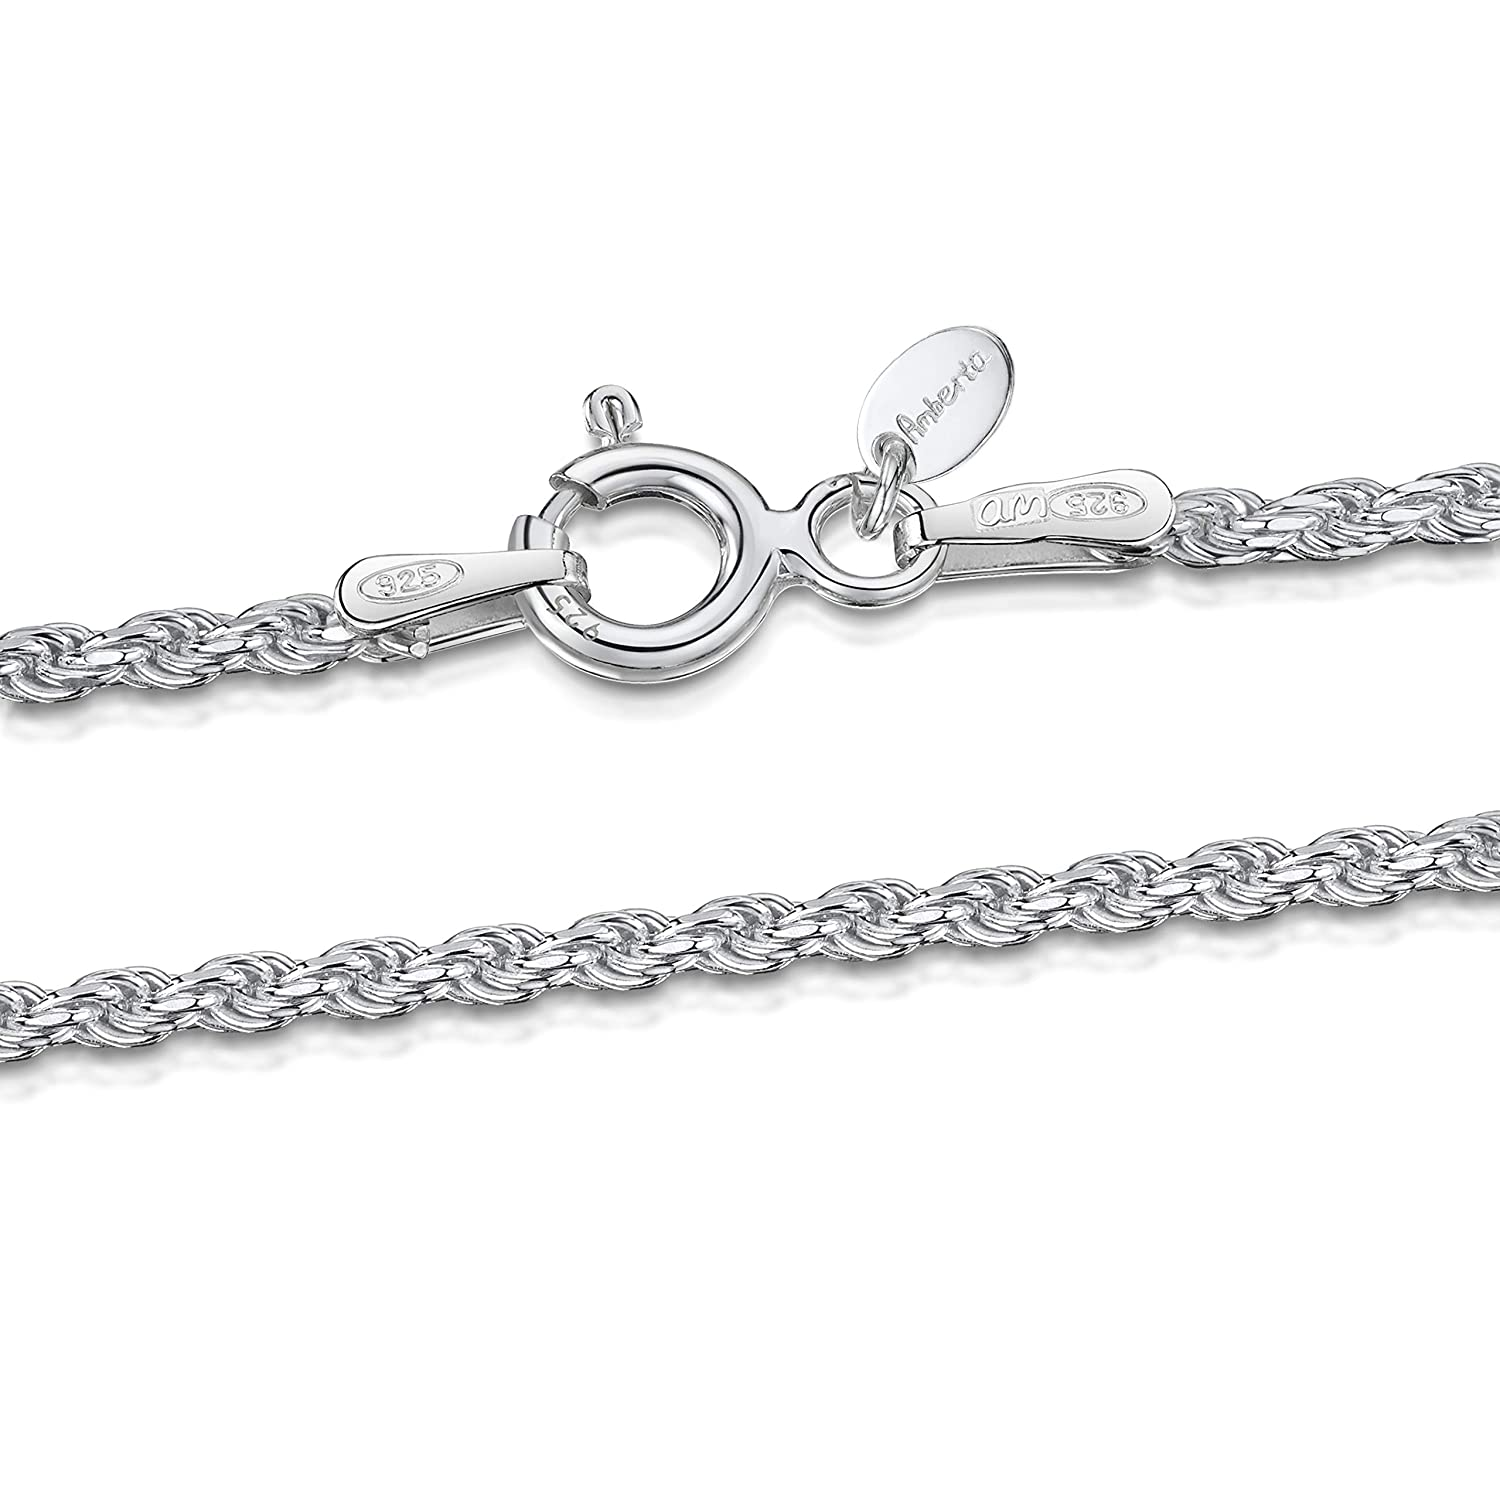 Amberta 925 Sterling Silver 1.5 mm Twisted French Rope Chain Necklace 16 18 20 22 24 in